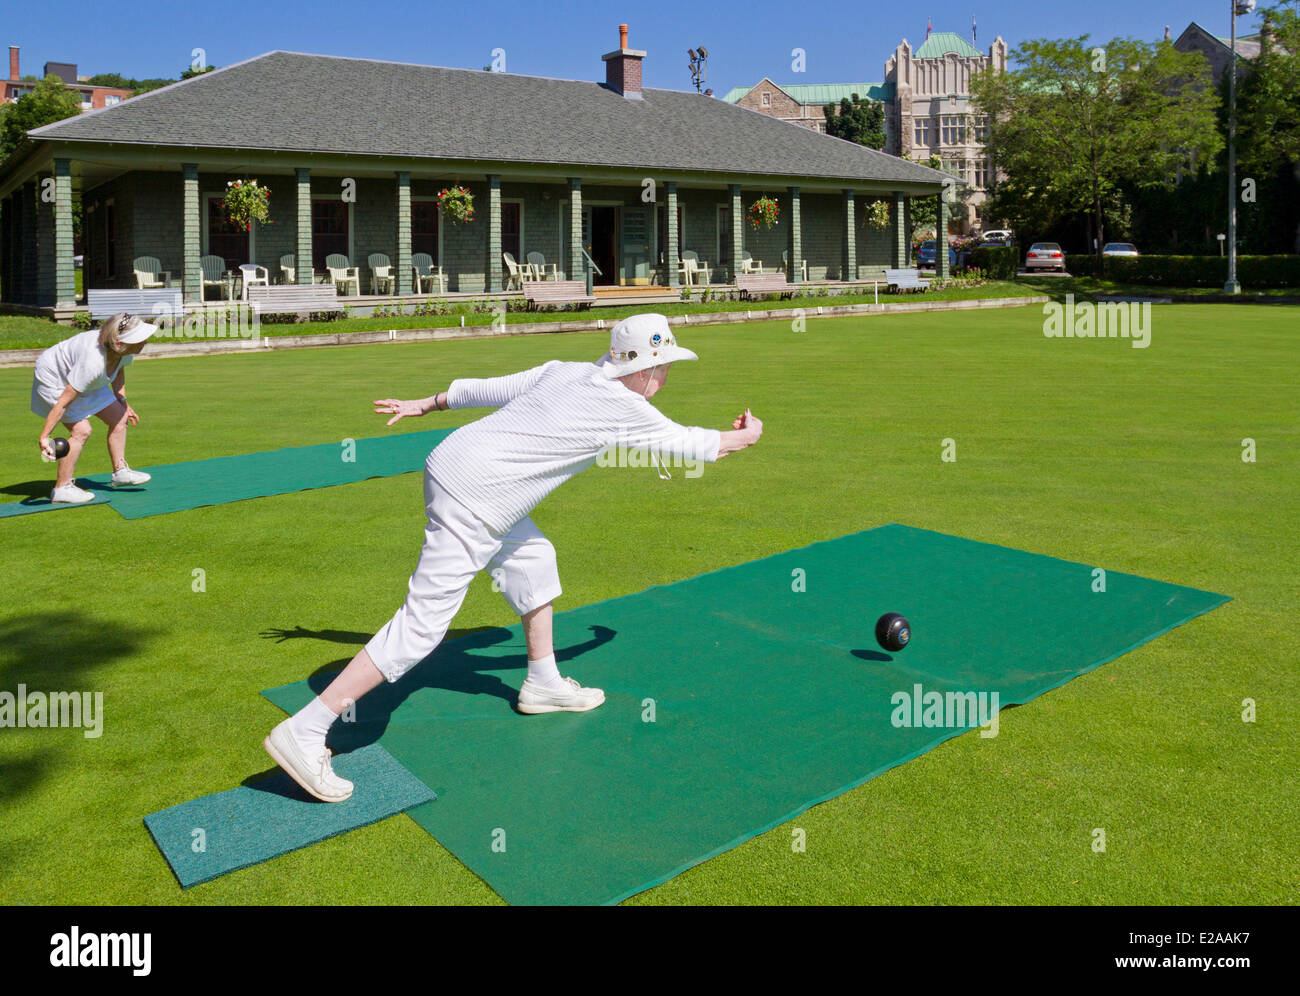 Canada, Quebec Province, Montreal, Westmount, the lawn bowling field - Stock Image